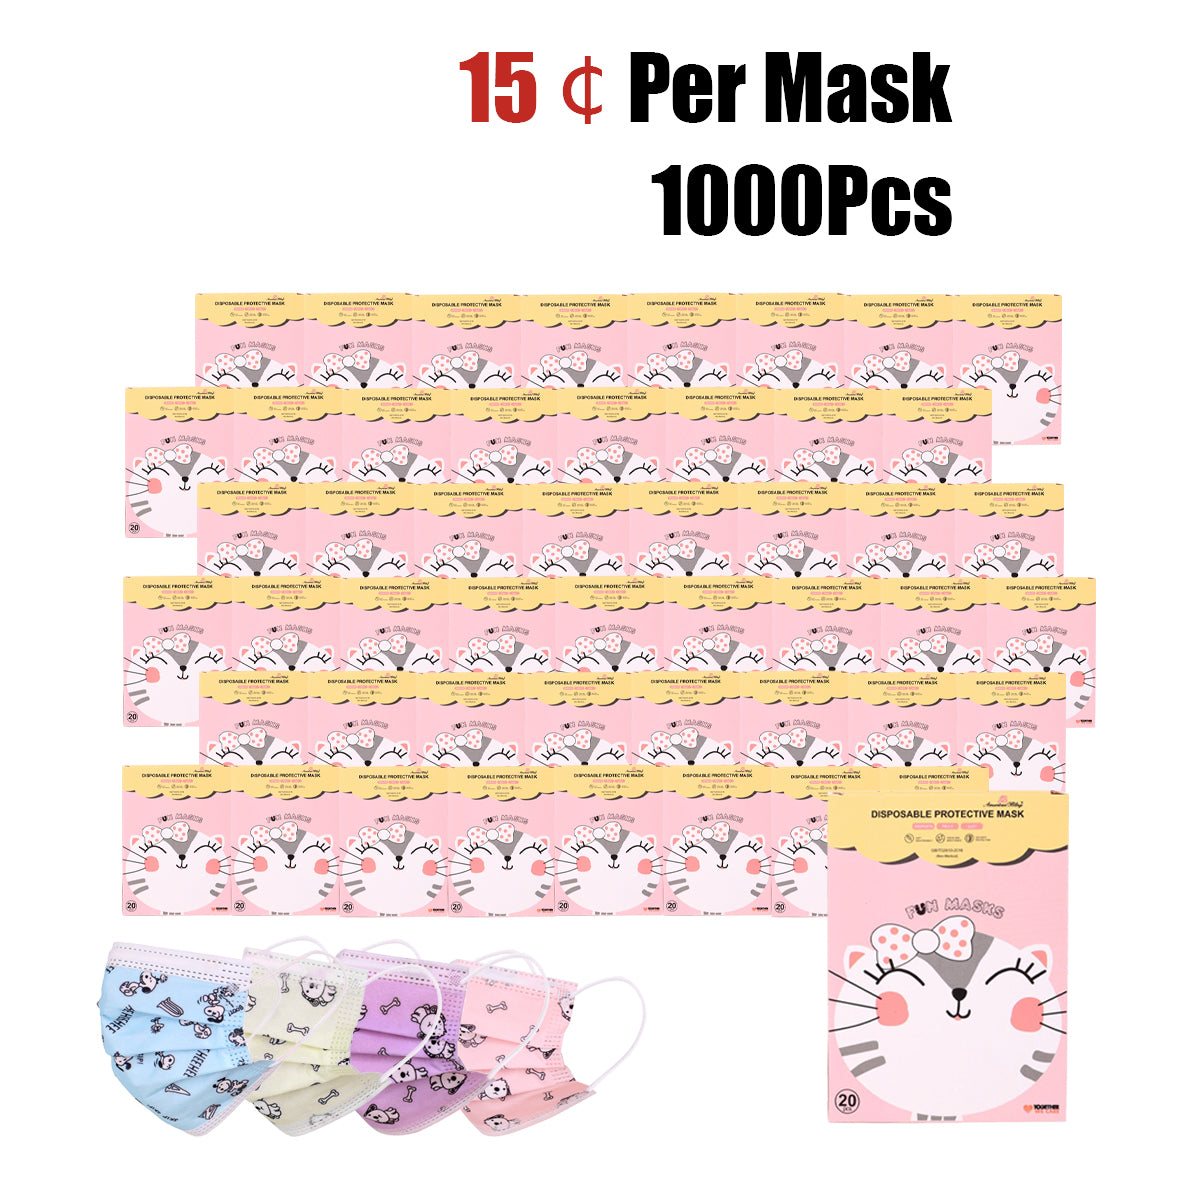 1000Pcs American Bling Kids 3 Ply Disposable Assorted Color Dog & Bone Print Face Mask  (20Pcs/Box)